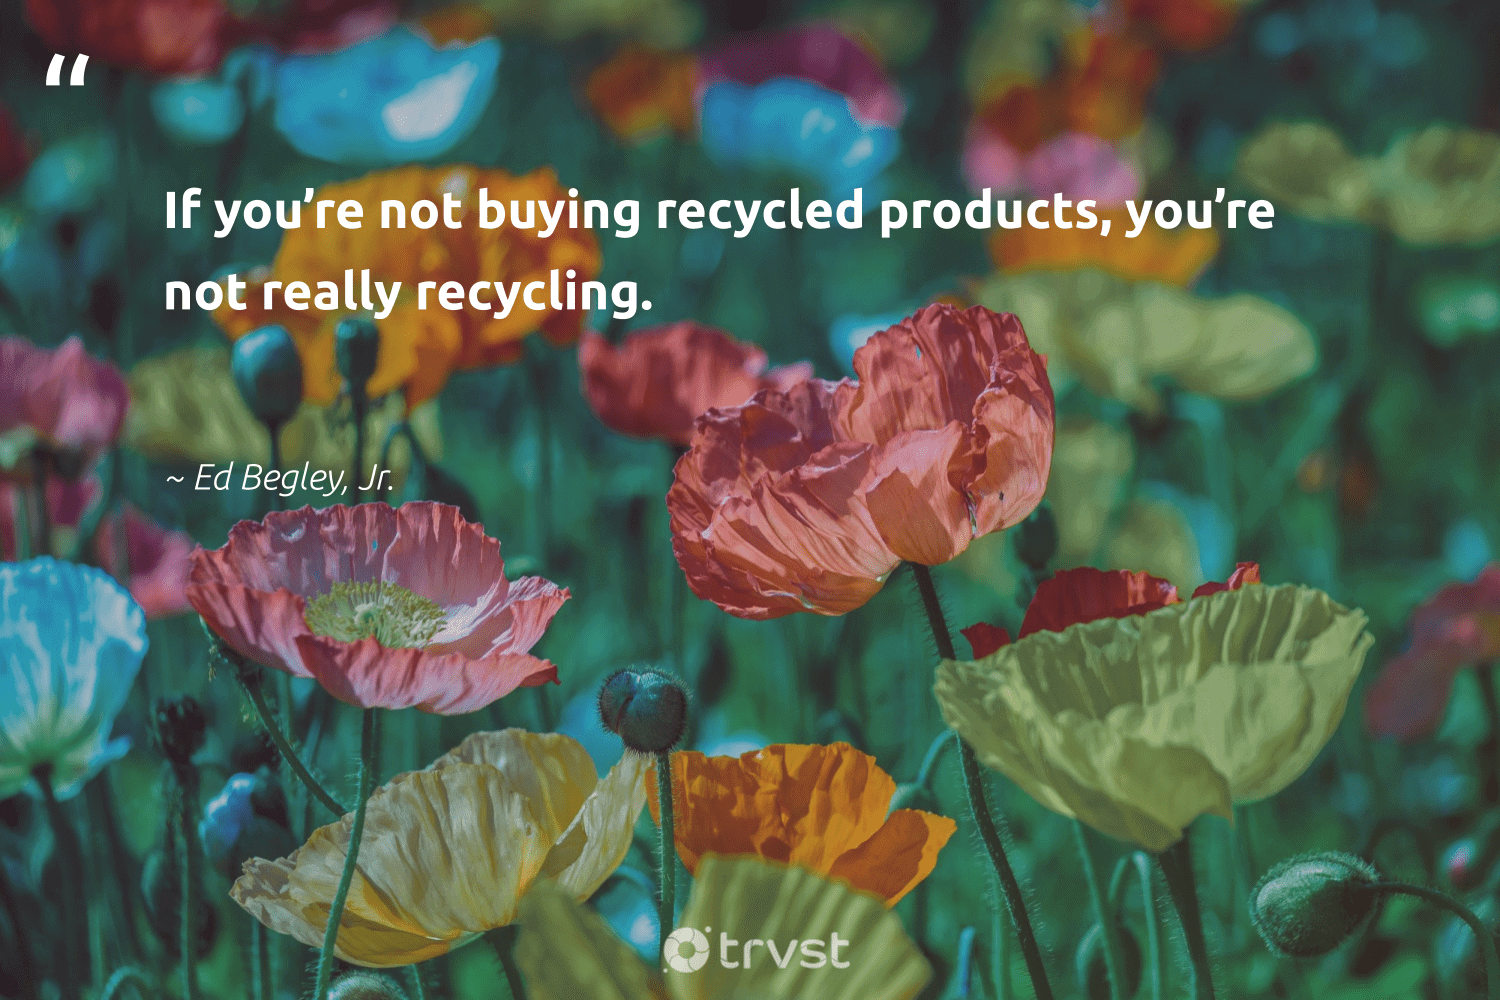 """""""If you're not buying recycled products, you're not really recycling.""""  - Ed Begley, Jr. #trvst #quotes #recycling #recycled #recycle #reducereuserecycle #wastefree #waronwaste #impact #repair #refurbished #ecoactivism"""